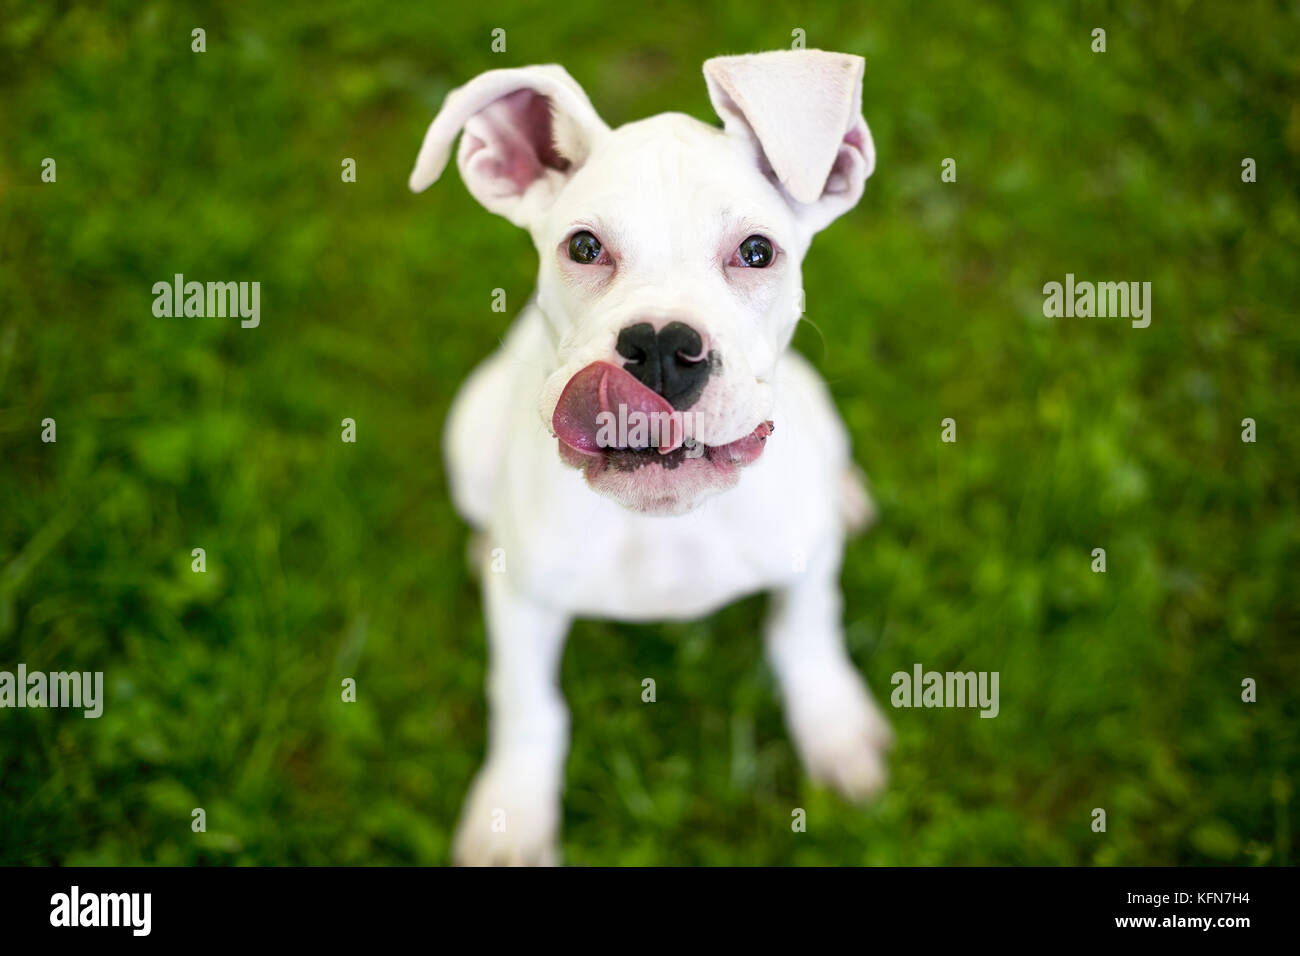 A hungry Great Dane puppy with large floppy ears, licking its lips - Stock Image